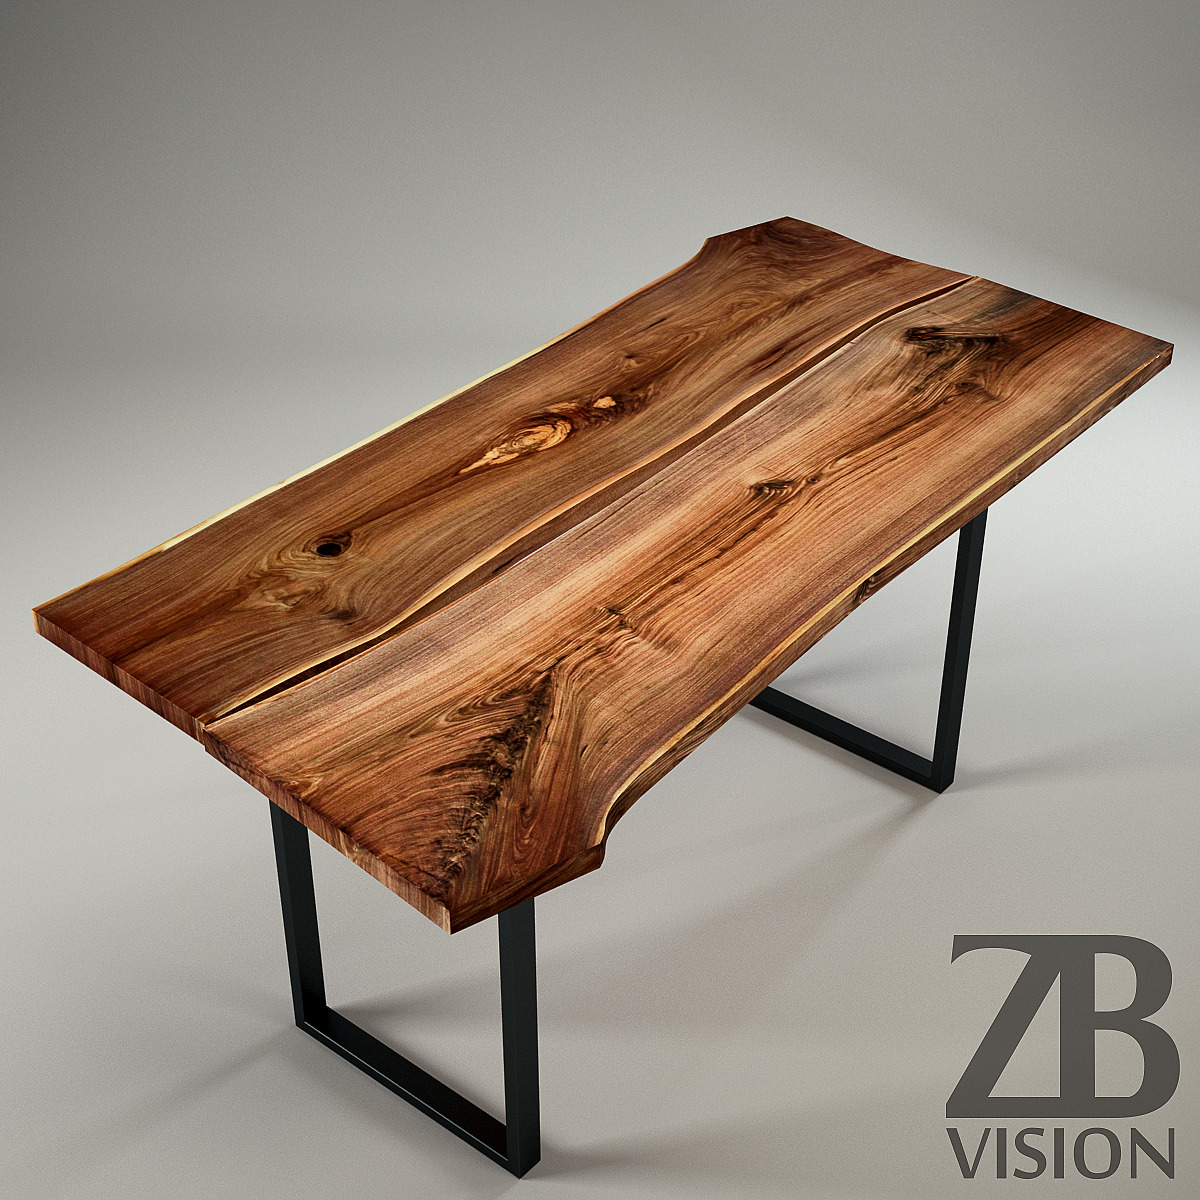 Wood slab table by ign design switzerland by luckyfox for Table design 3d